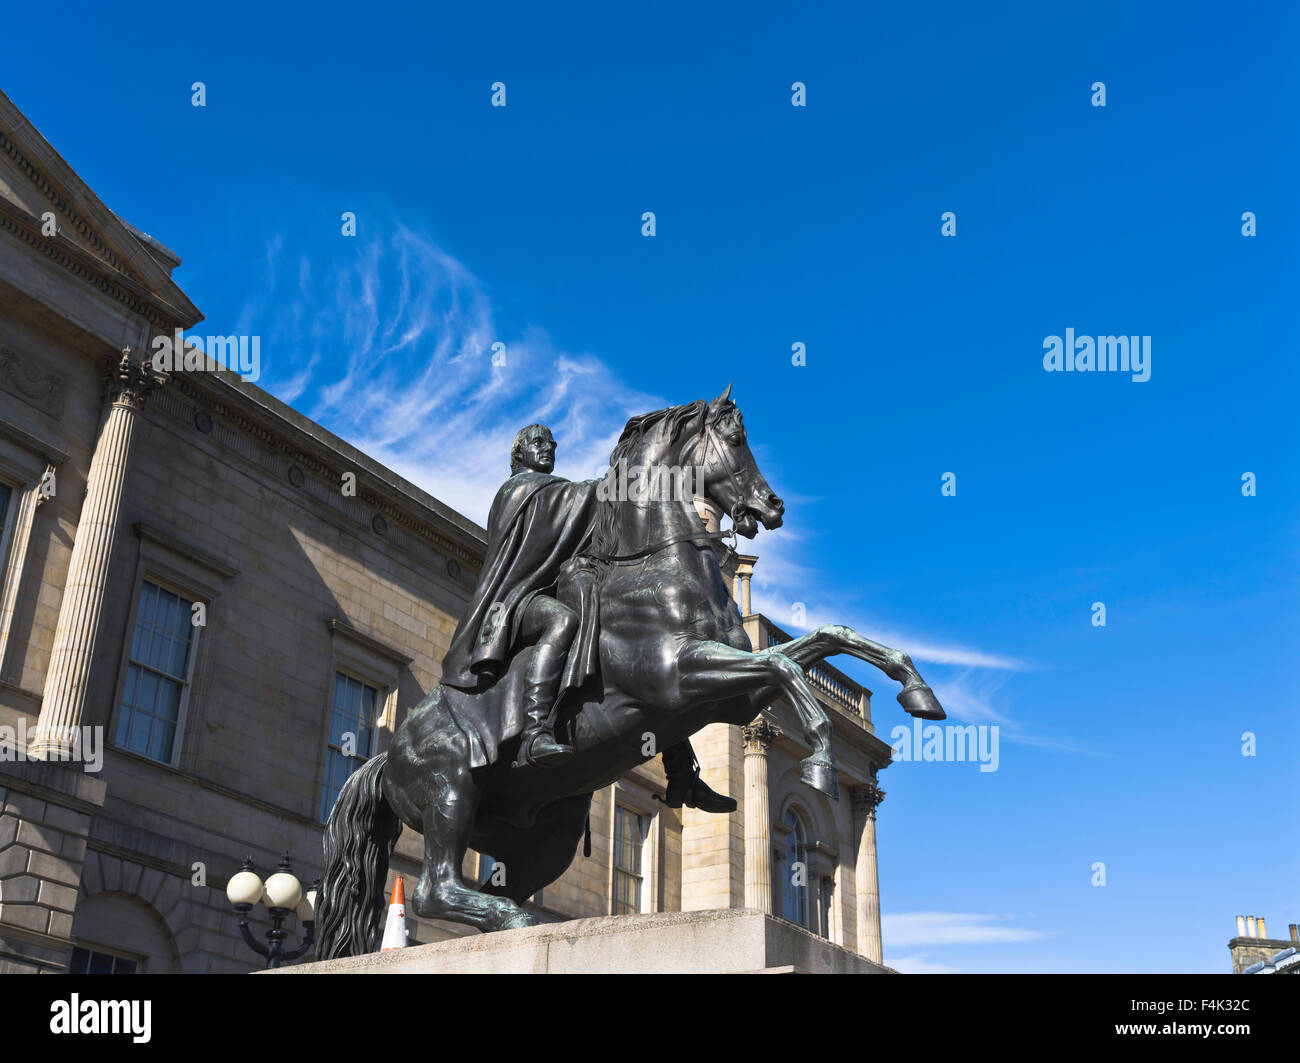 dh  PRINCES STREET EDINBURGH Duke of Wellington statue - Stock Image